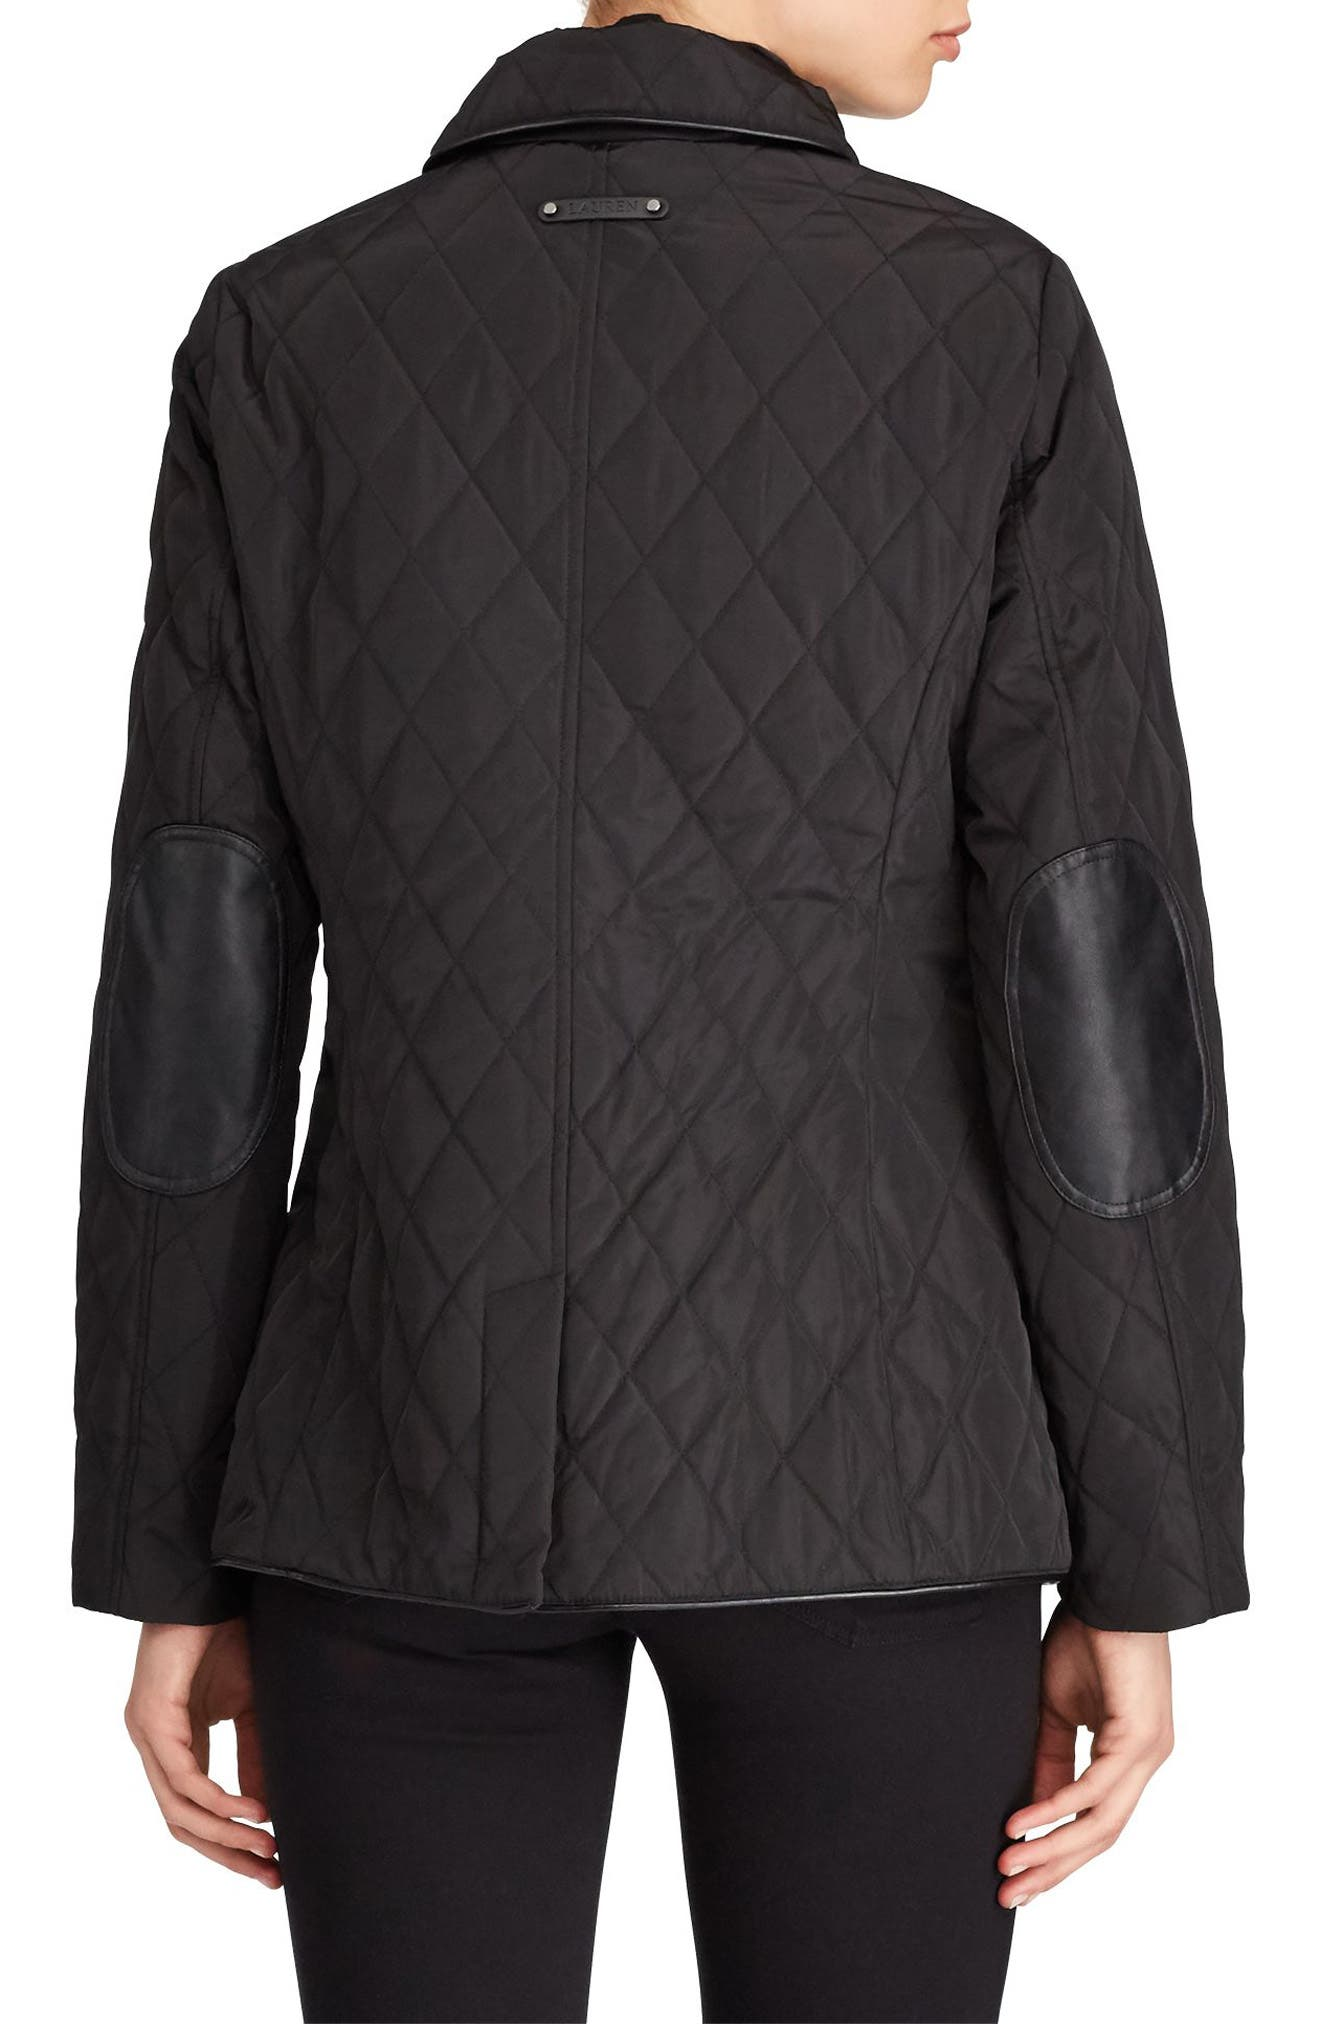 Alternate Image 3  - Lauren Ralph Lauren Faux Leather Trim Quilted Jacket (Regular & Petite)